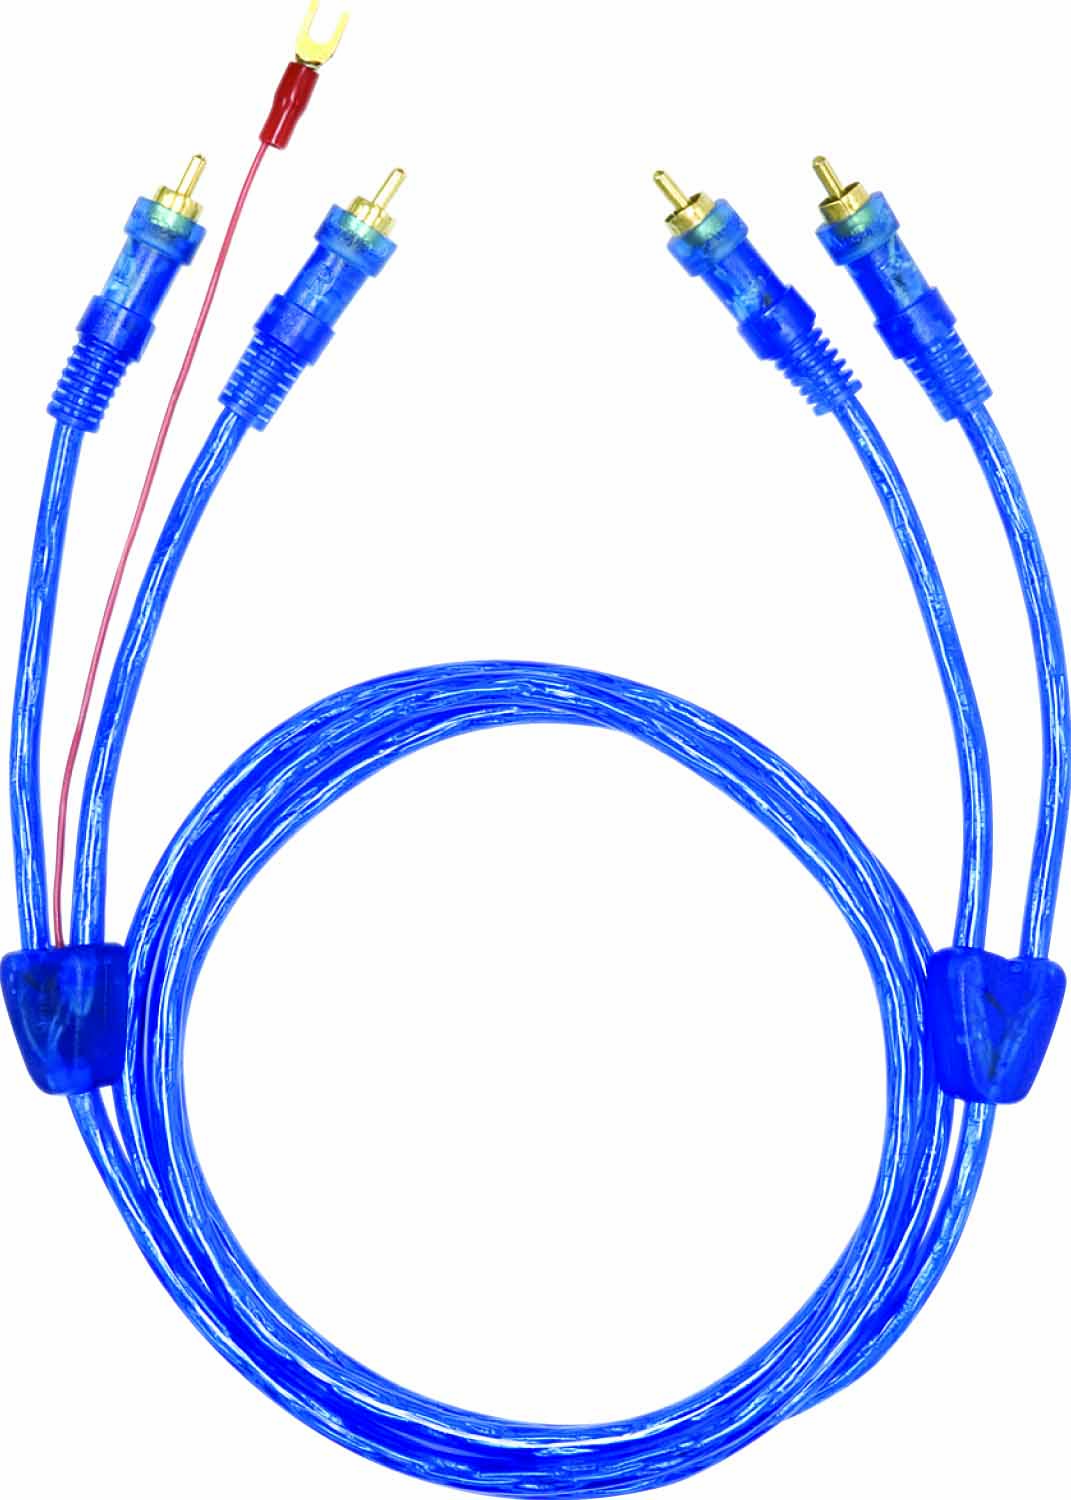 AML3 - Audiopipe High Heat Resistant PCA Cable w/Blue Led